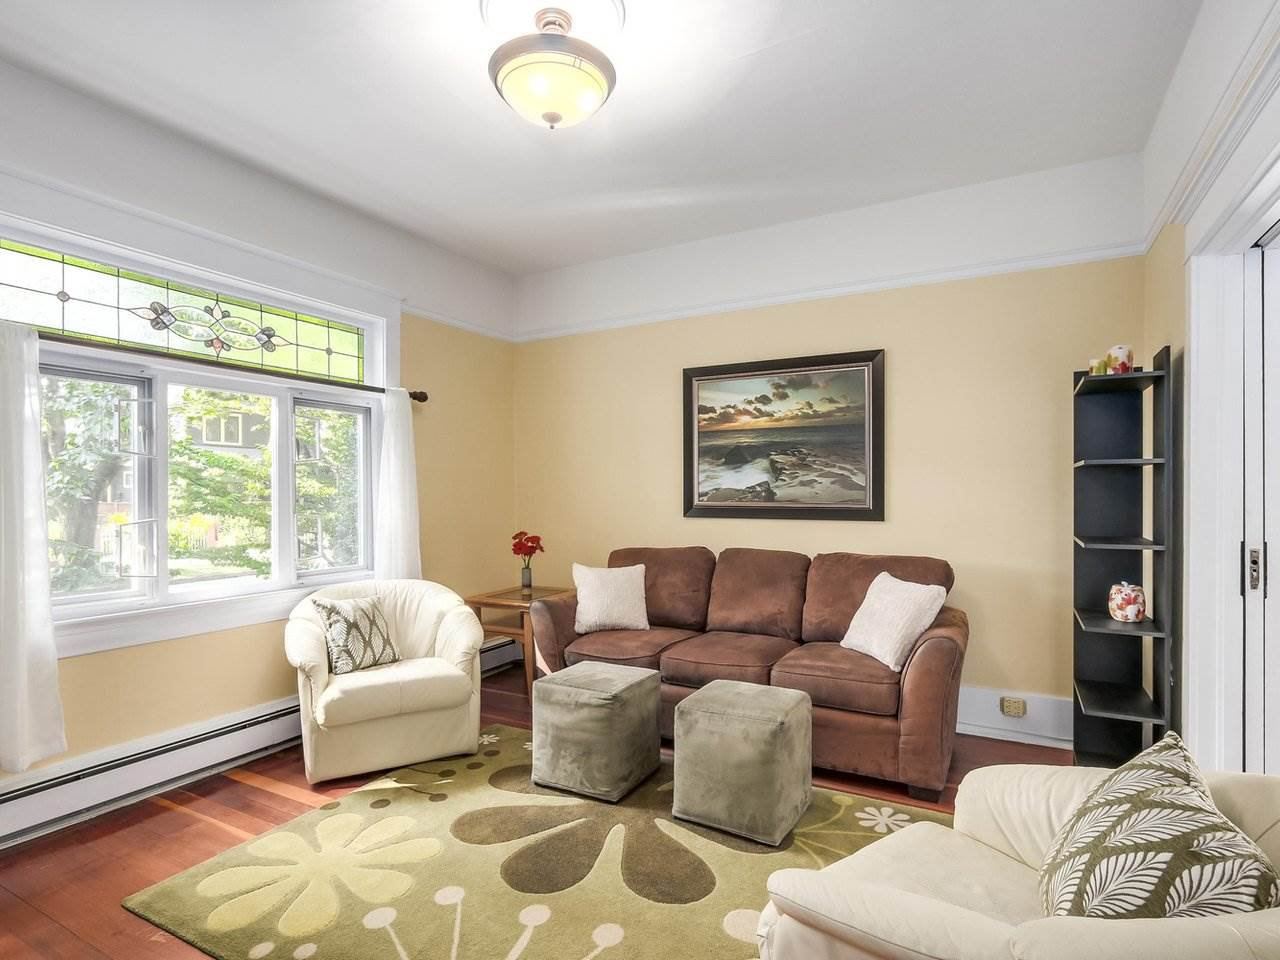 Photo 3: Photos: 1761 E 13TH AVENUE in Vancouver: Grandview VE House for sale (Vancouver East)  : MLS®# R2202018